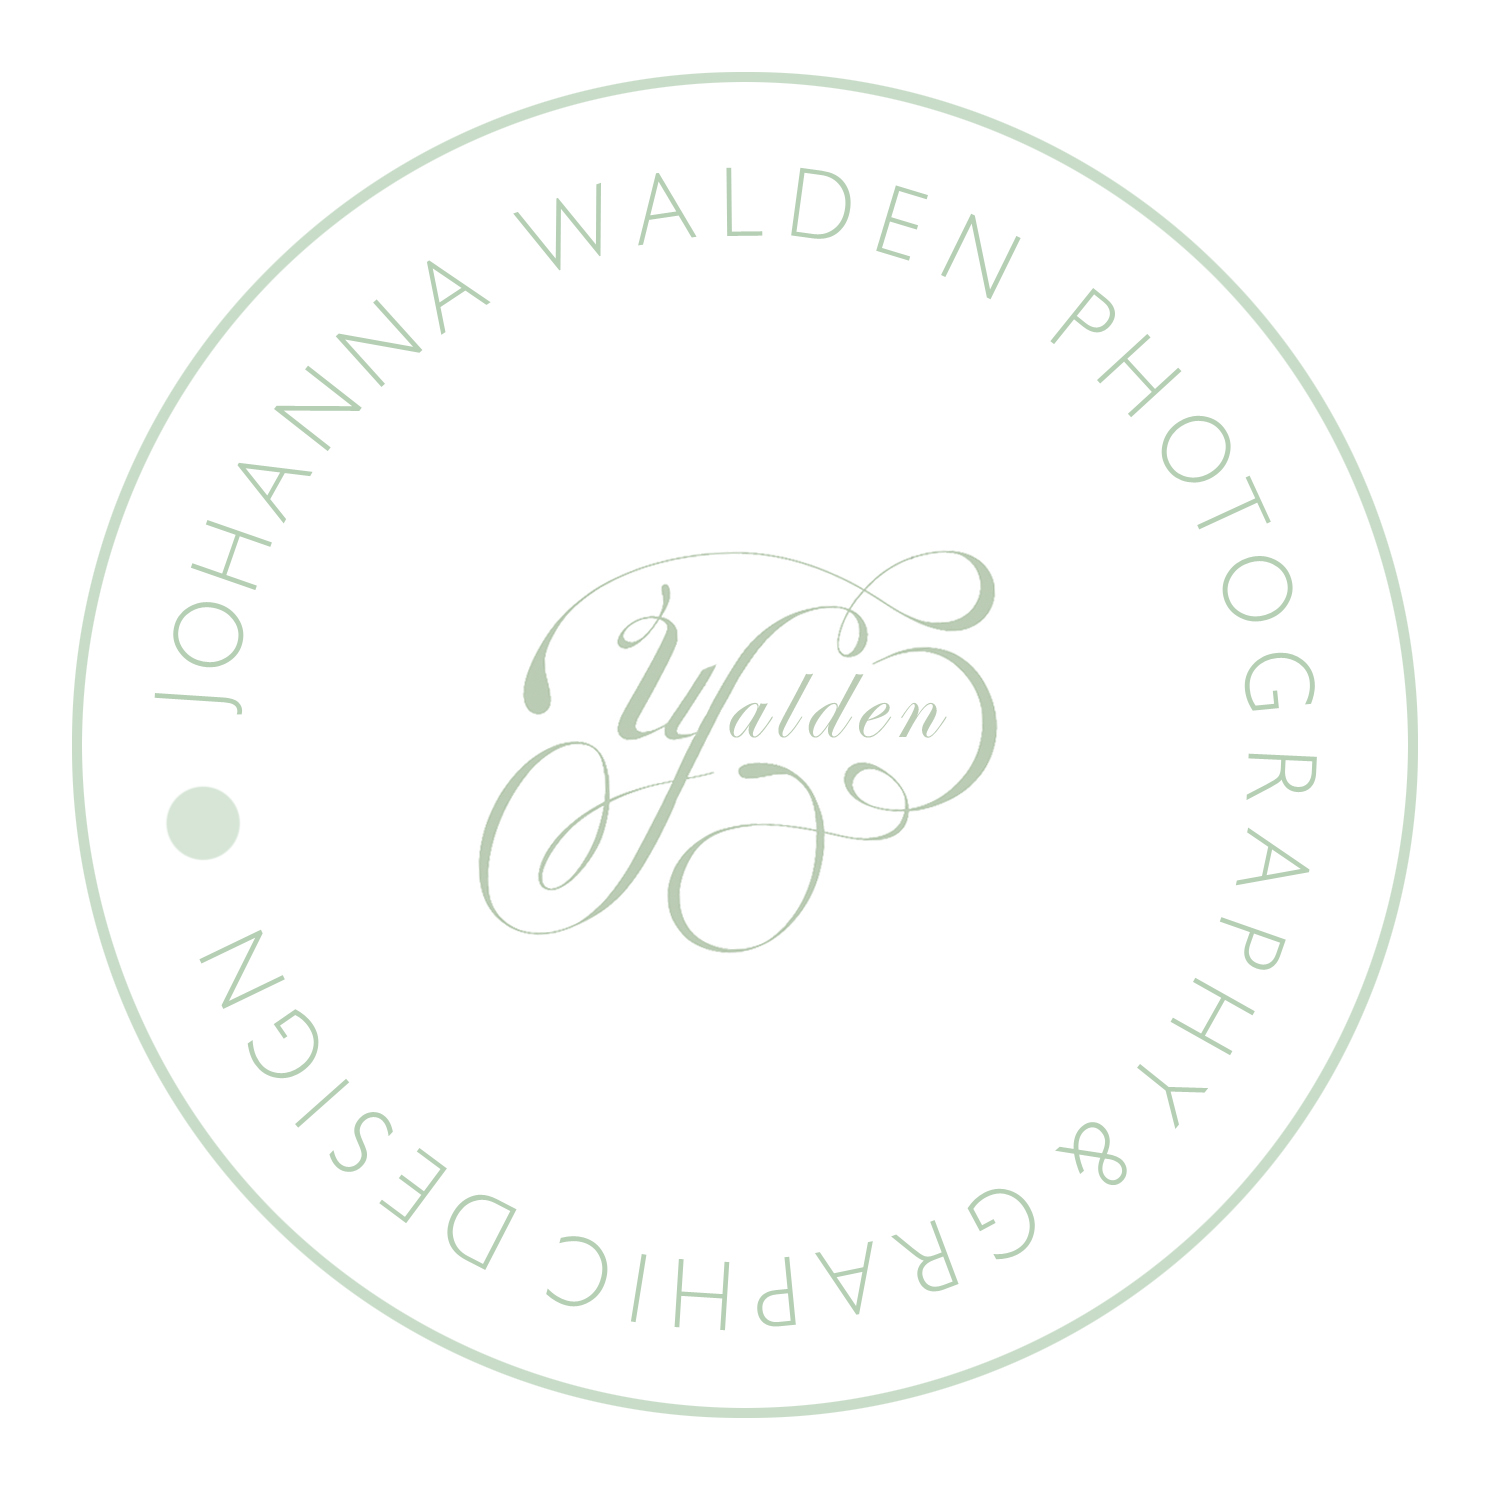 Johanna Walden Photography & Graphic Design